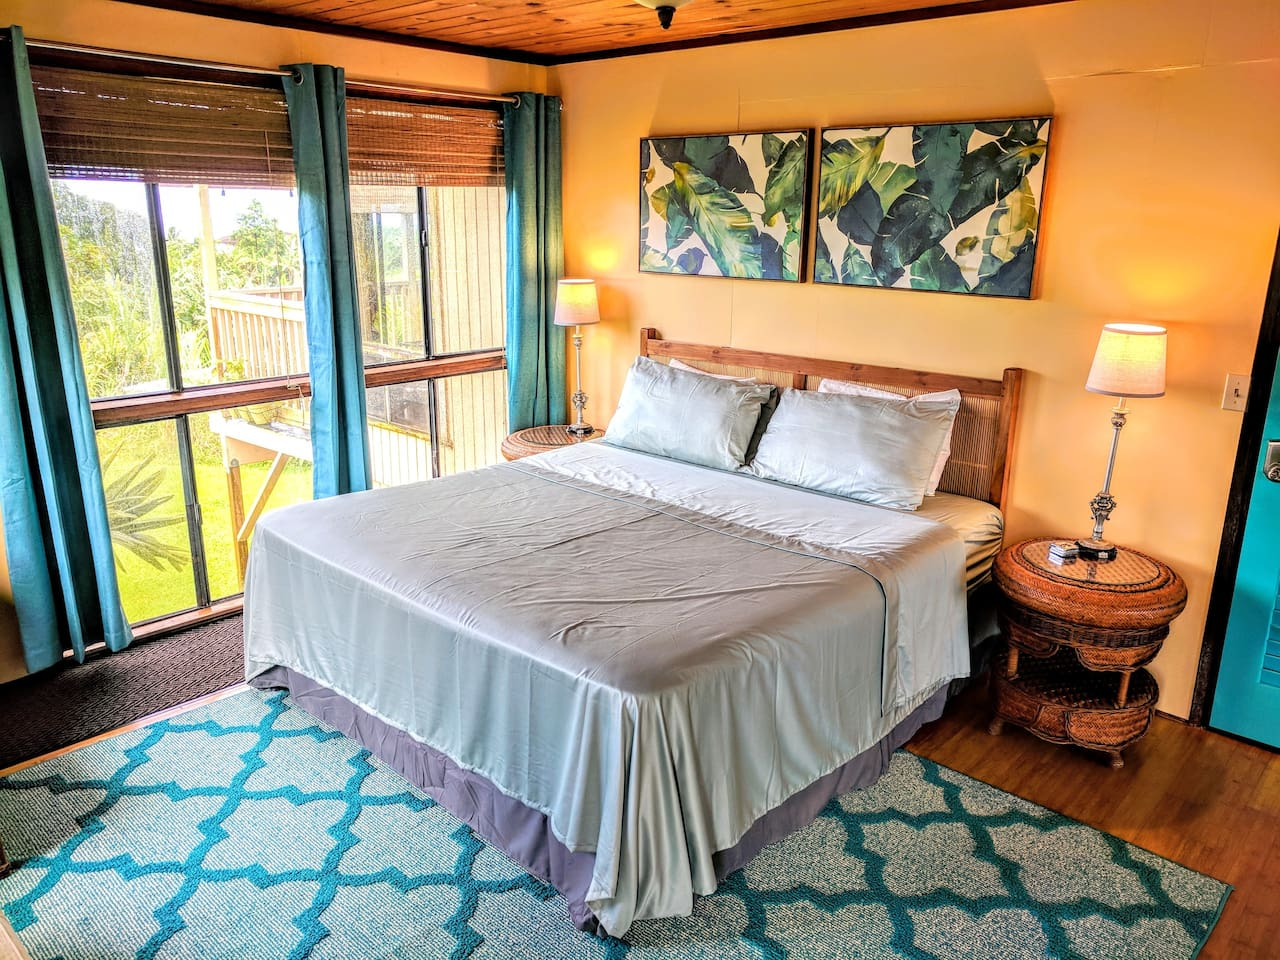 Room #3.  We have two king rooms in the house with the same amenities, but they are decorated differently.  Your room will be assigned automatically based on the other reservations that have come before yours.